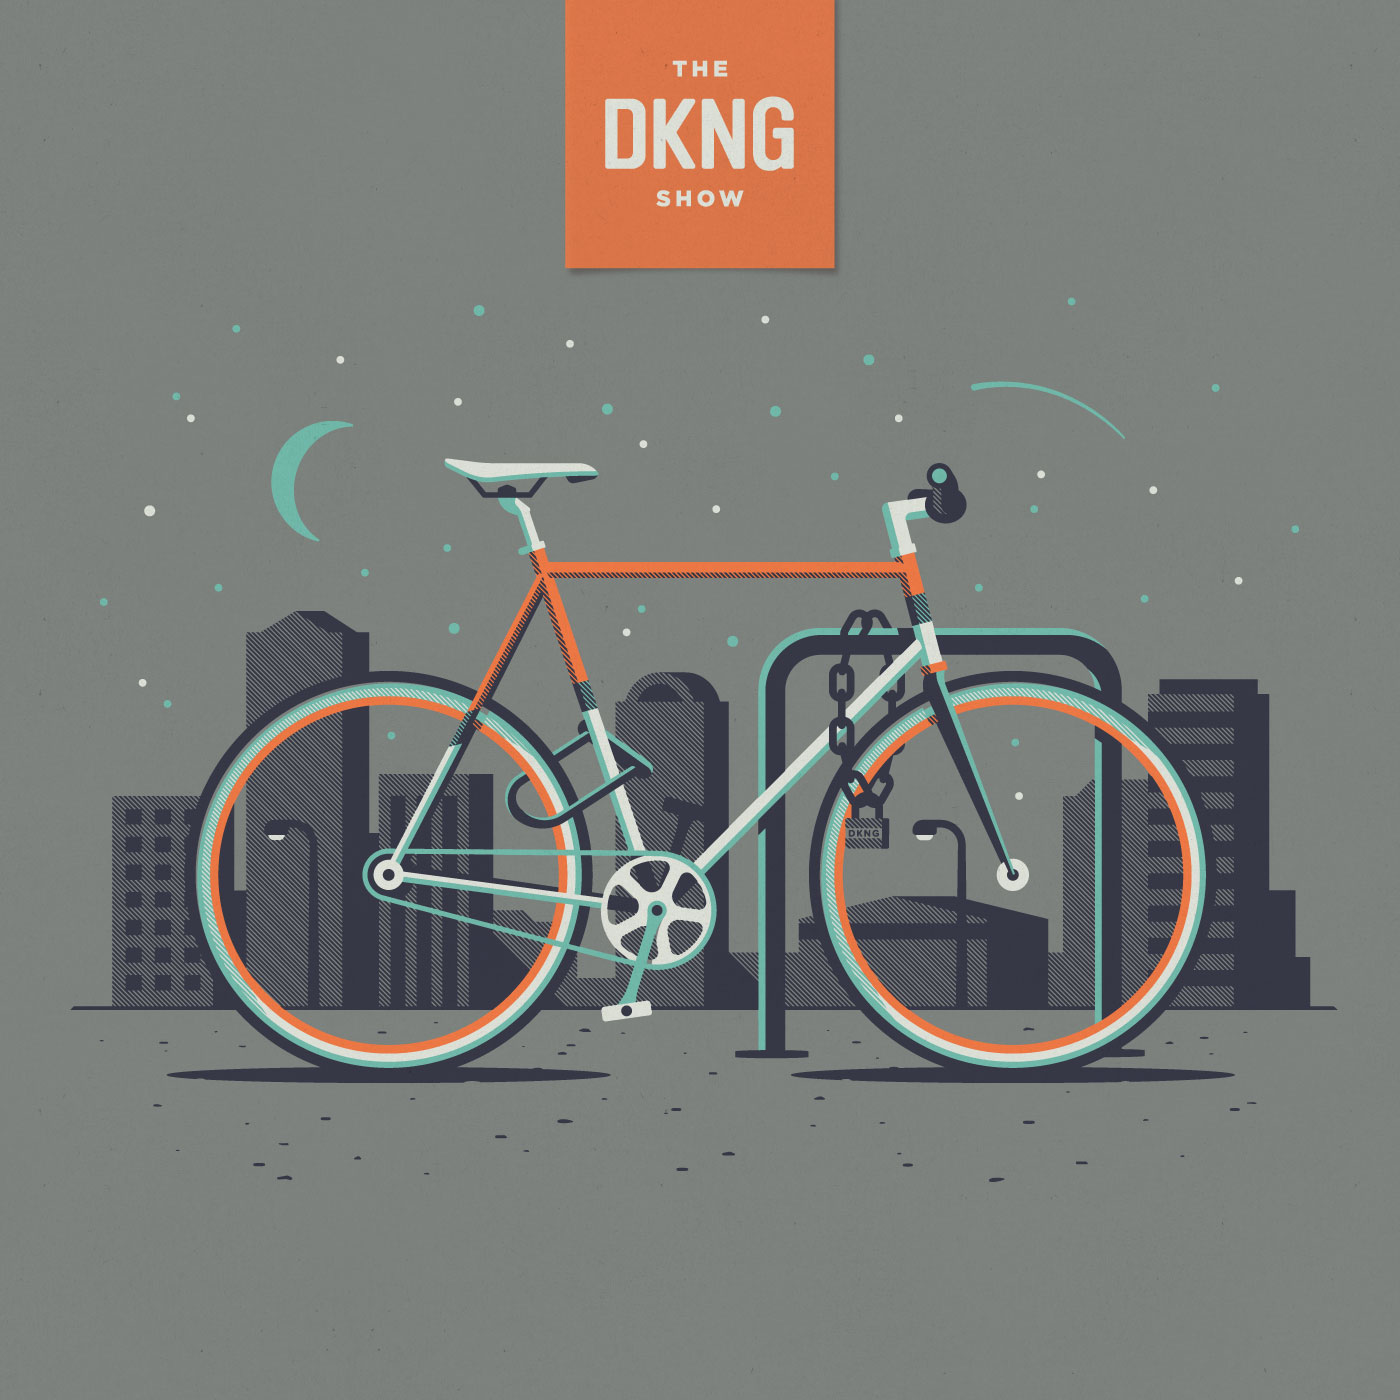 473 - The DKNG Show: Chapter 5